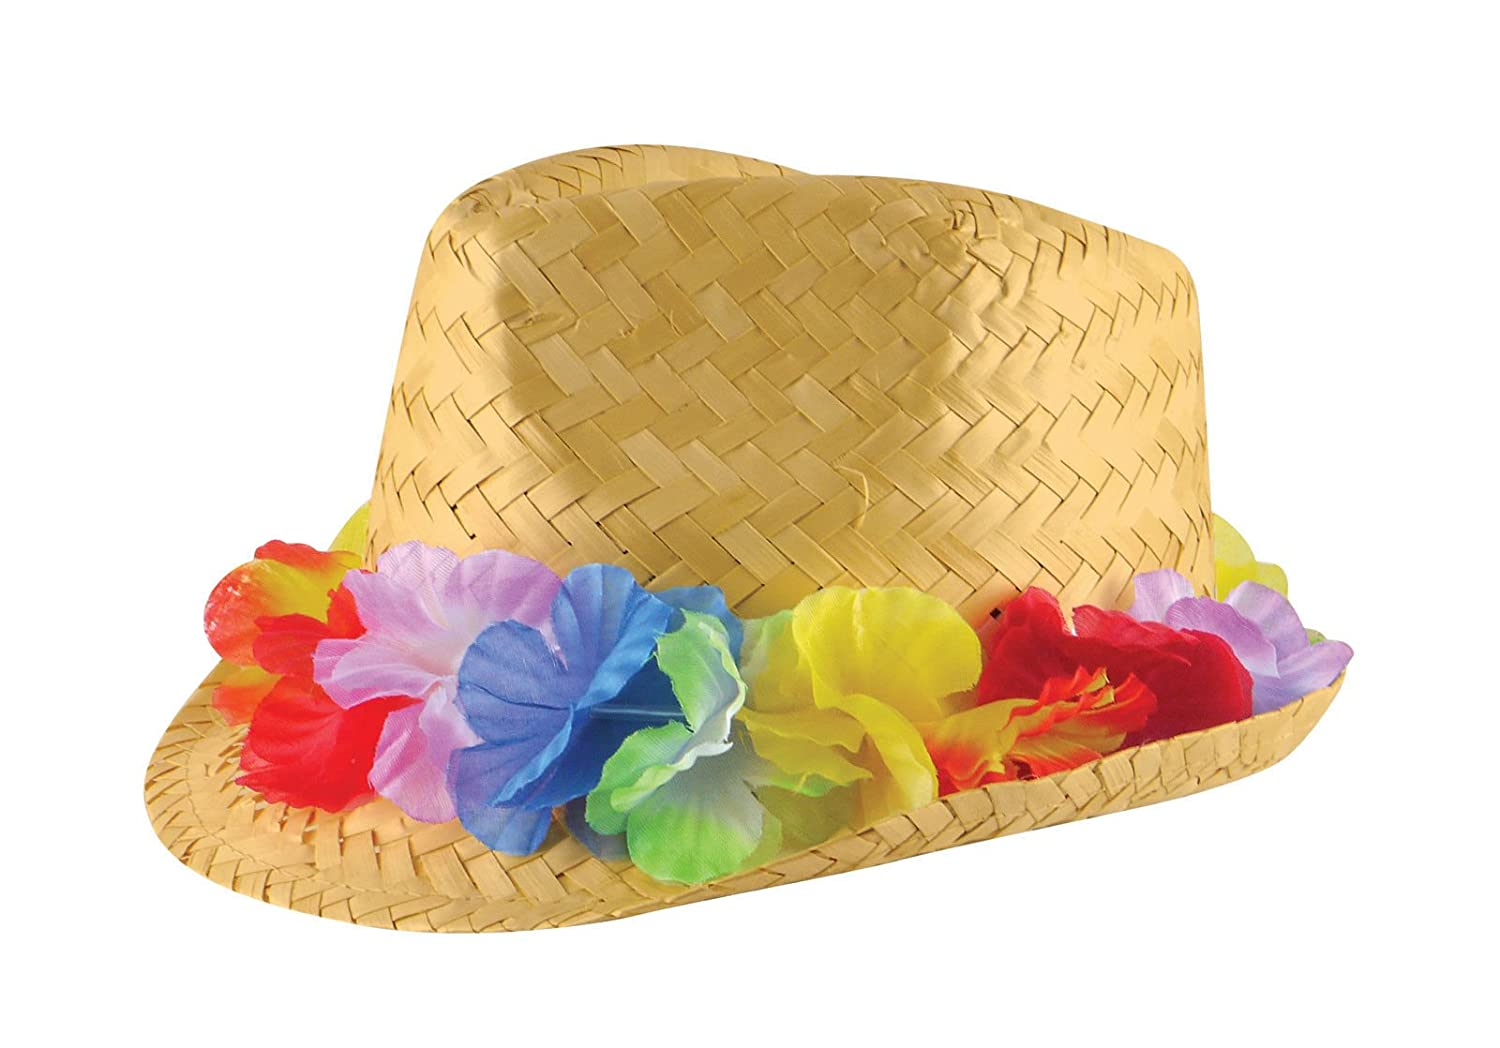 Eshoppingwarehouse Adults Unisex Gangster Straw Hat W/Flower Band Hawaiian Hula Party Headwear Hat Straw Hat W/Flower Band)